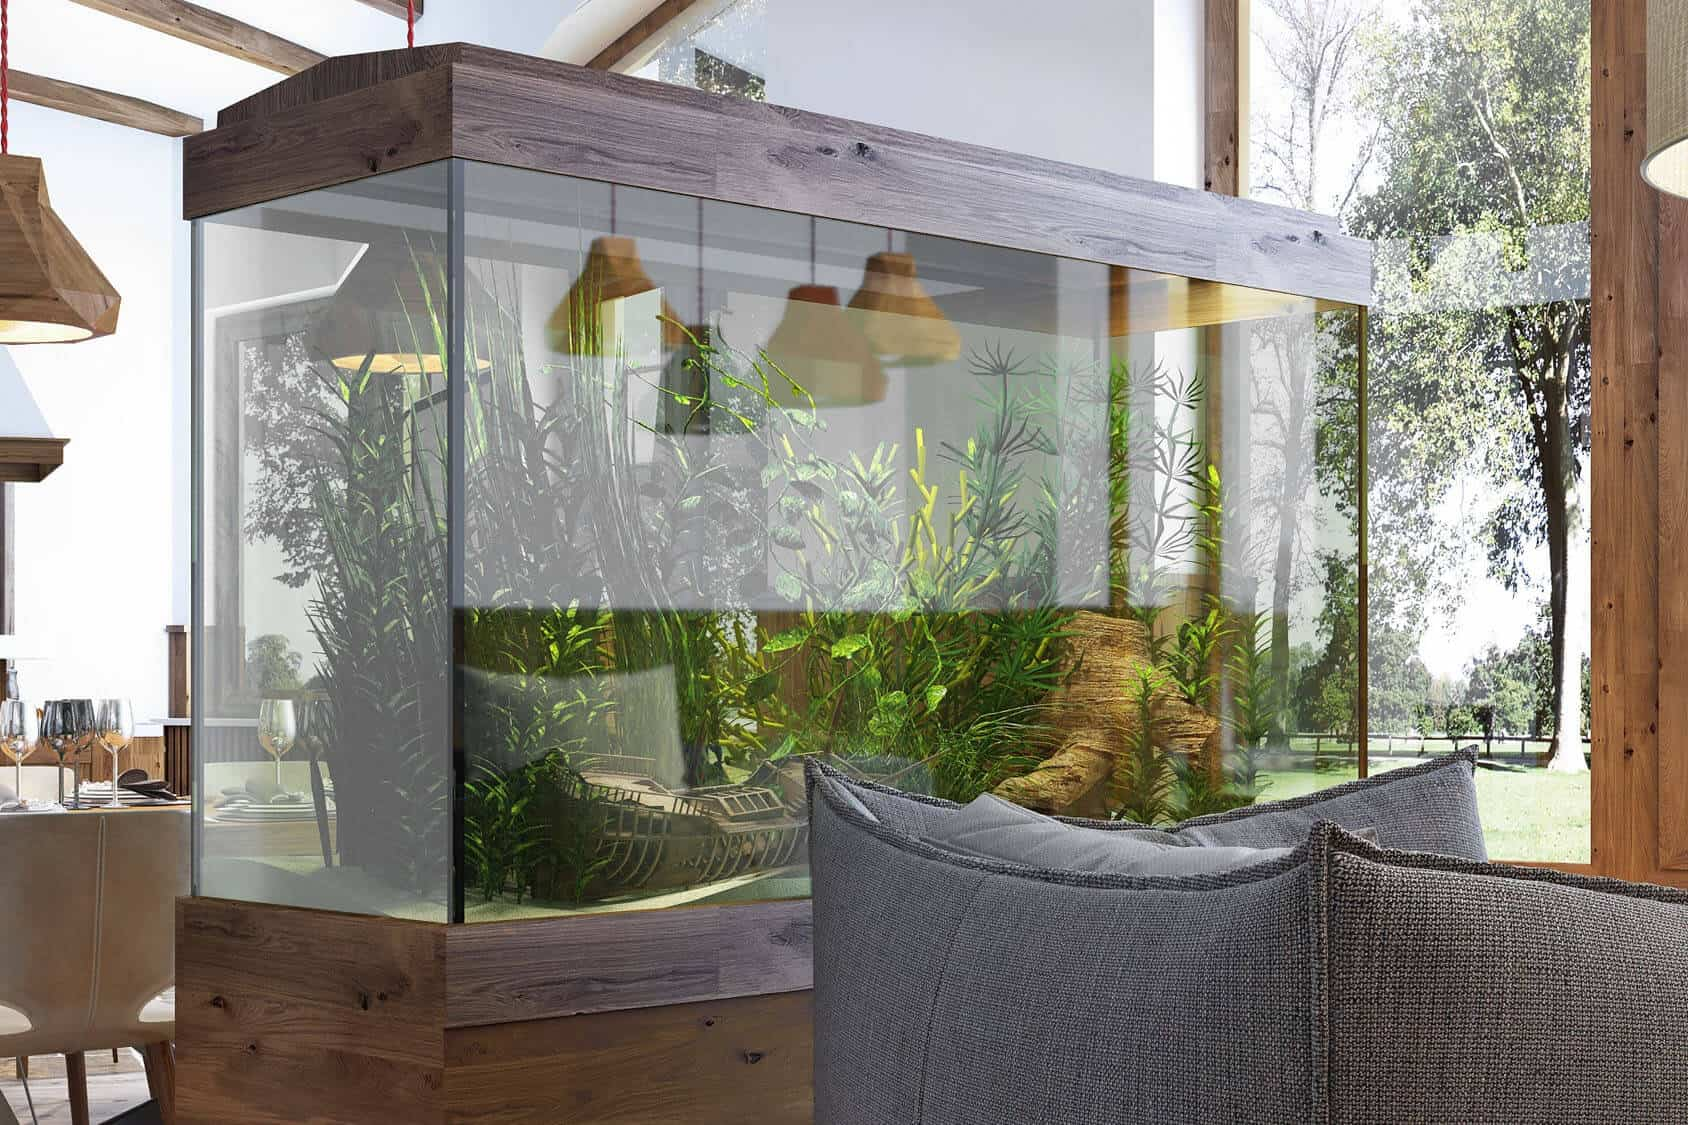 100 Gallon Fish Tank Guide The Ultimate Aquarium?